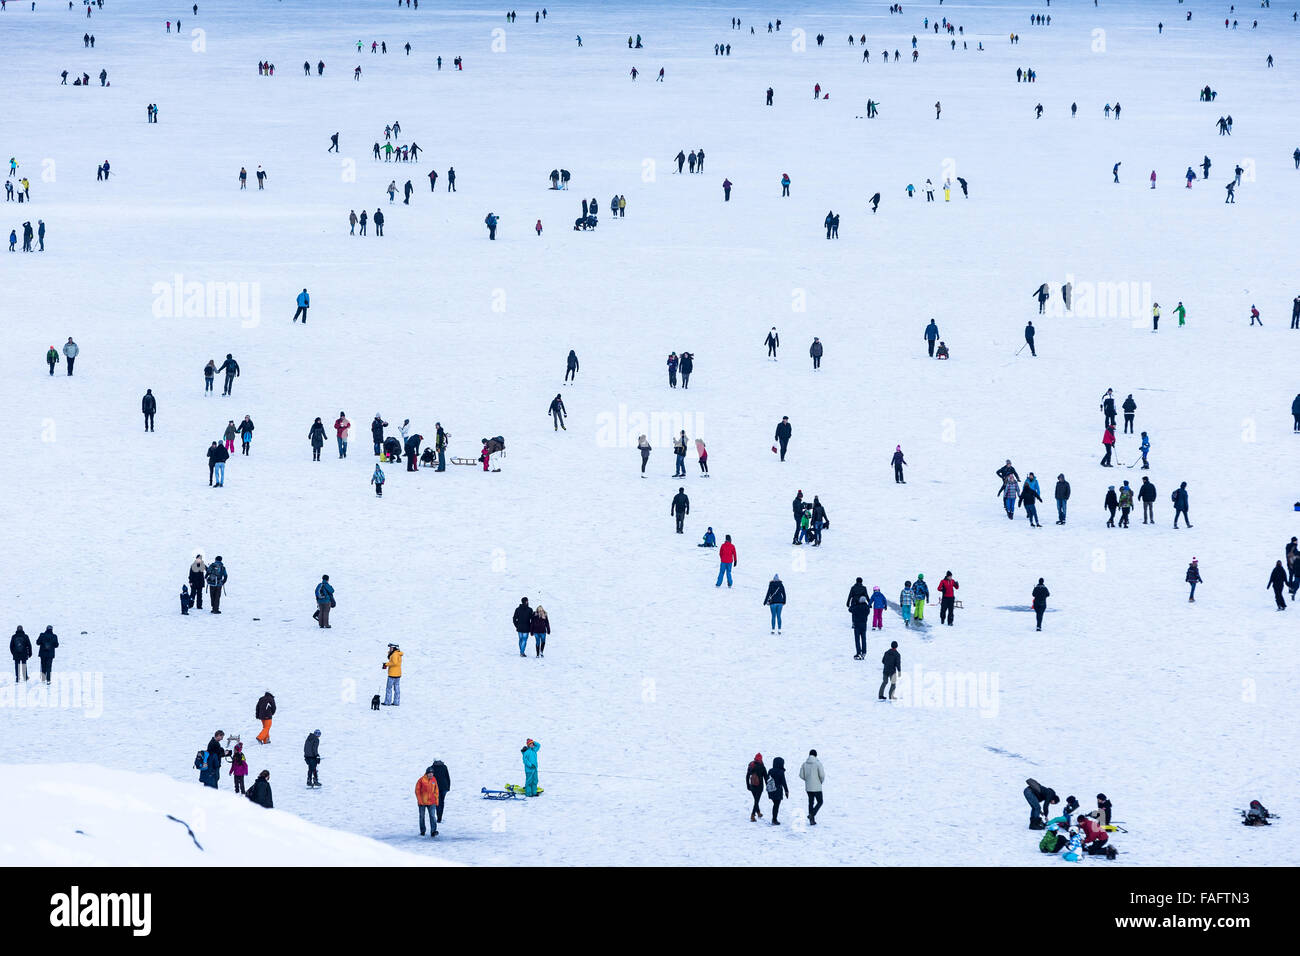 Kandersteg, Switzerland. 29th December, 2015. Ice skaters and walkers on the frozen lake Oeschinen 'Oeschinensee'. - Stock Image